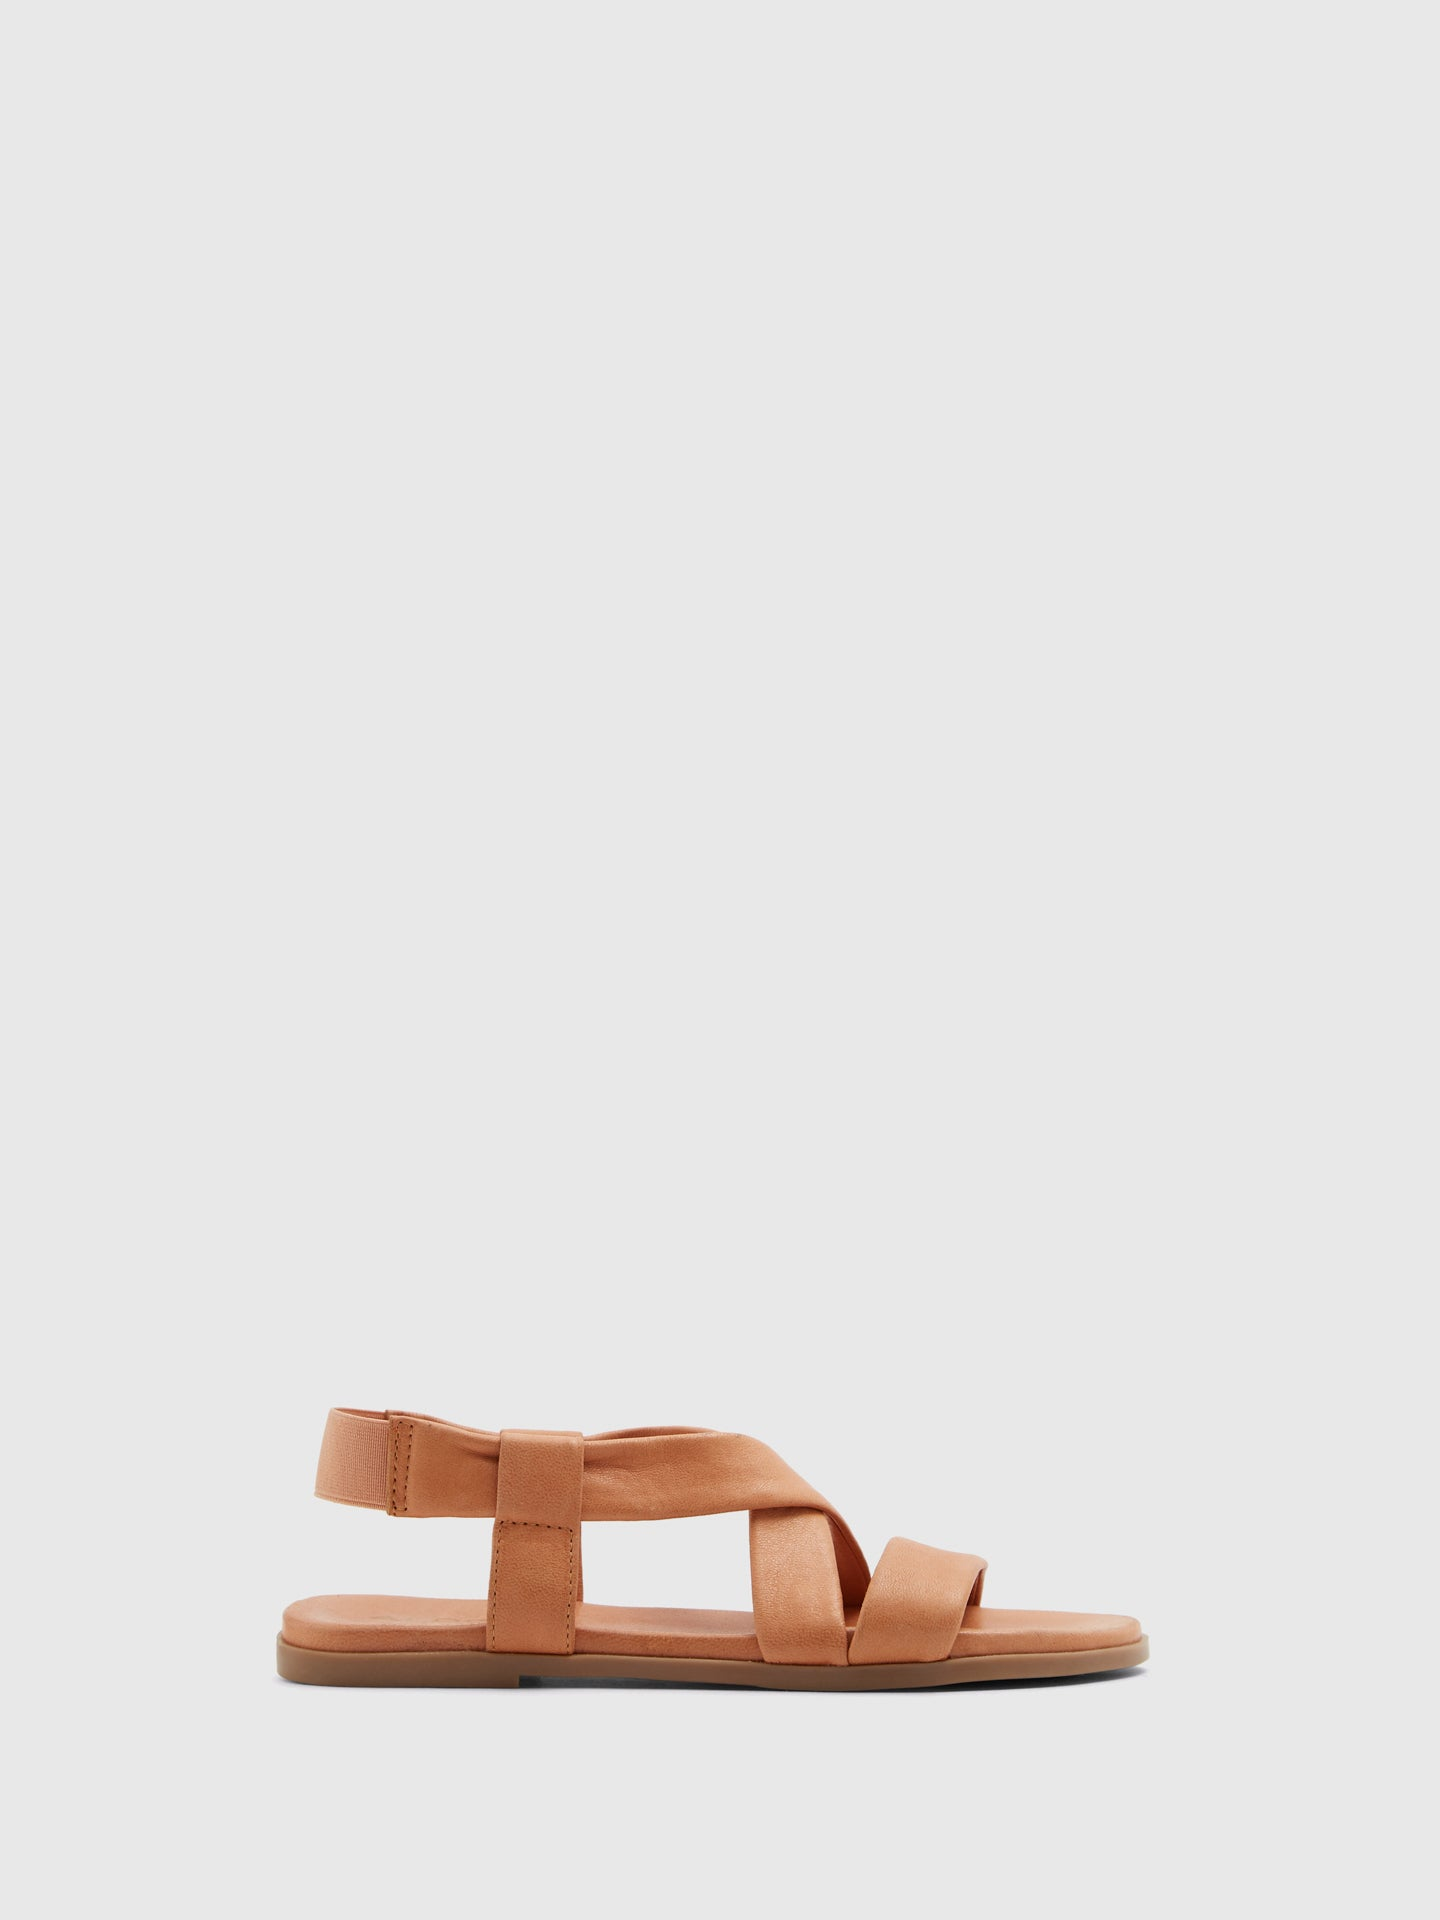 Aldo Brown Sling-Back Sandals